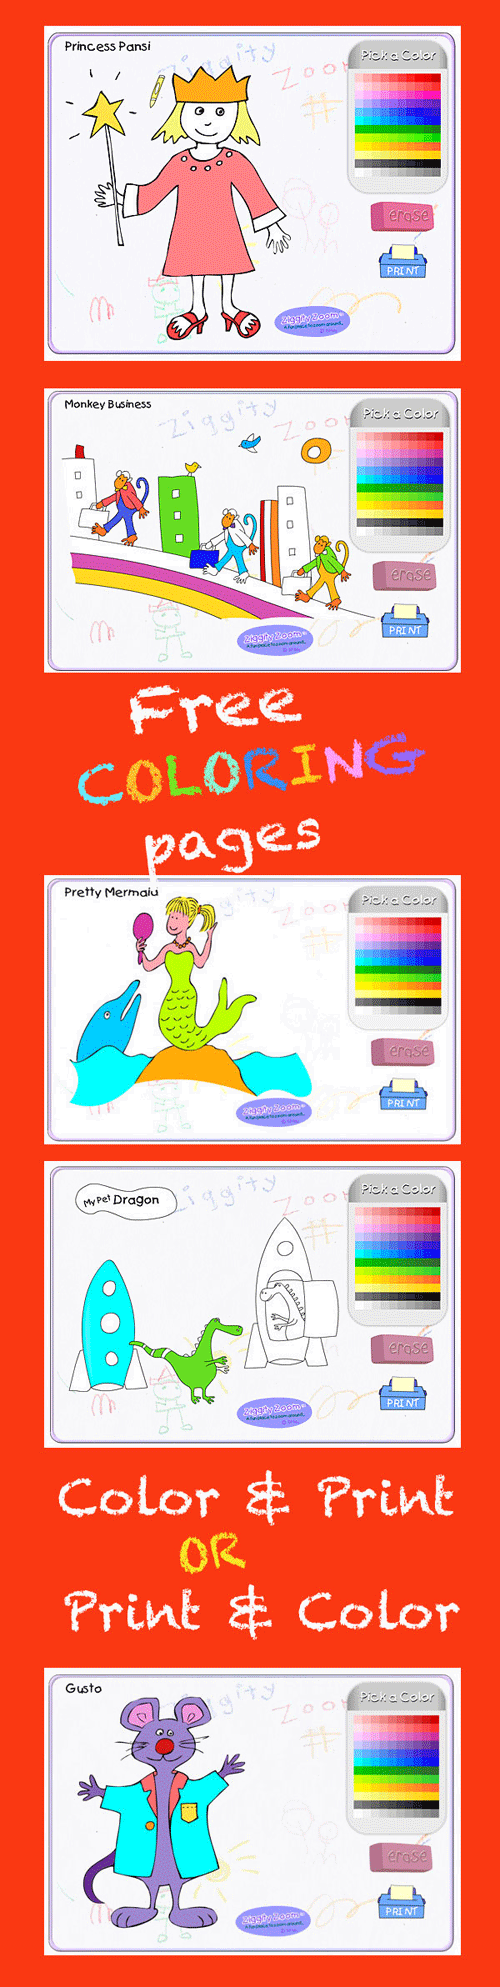 Coloring online or Print and color